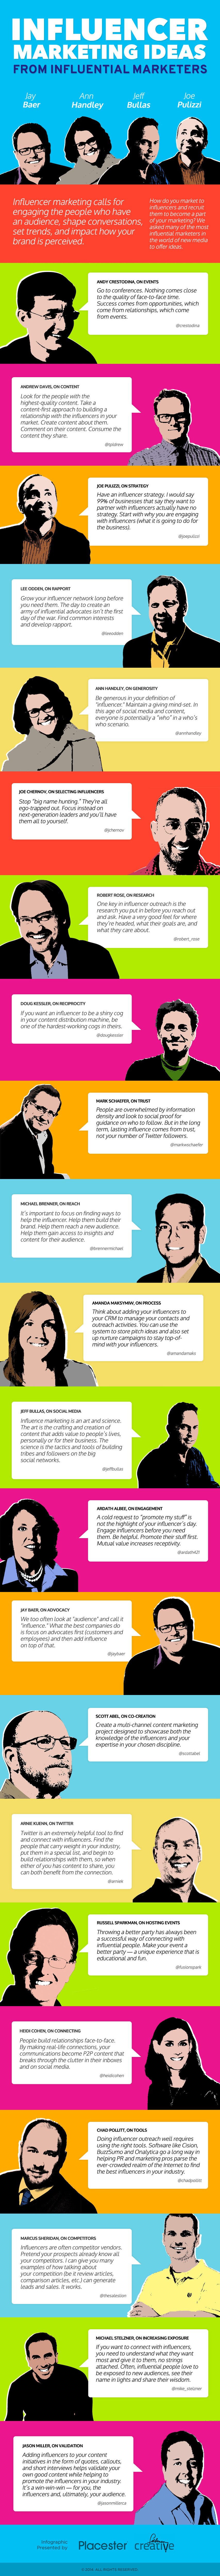 influencer-marketing-ideas-from-influential-marketers